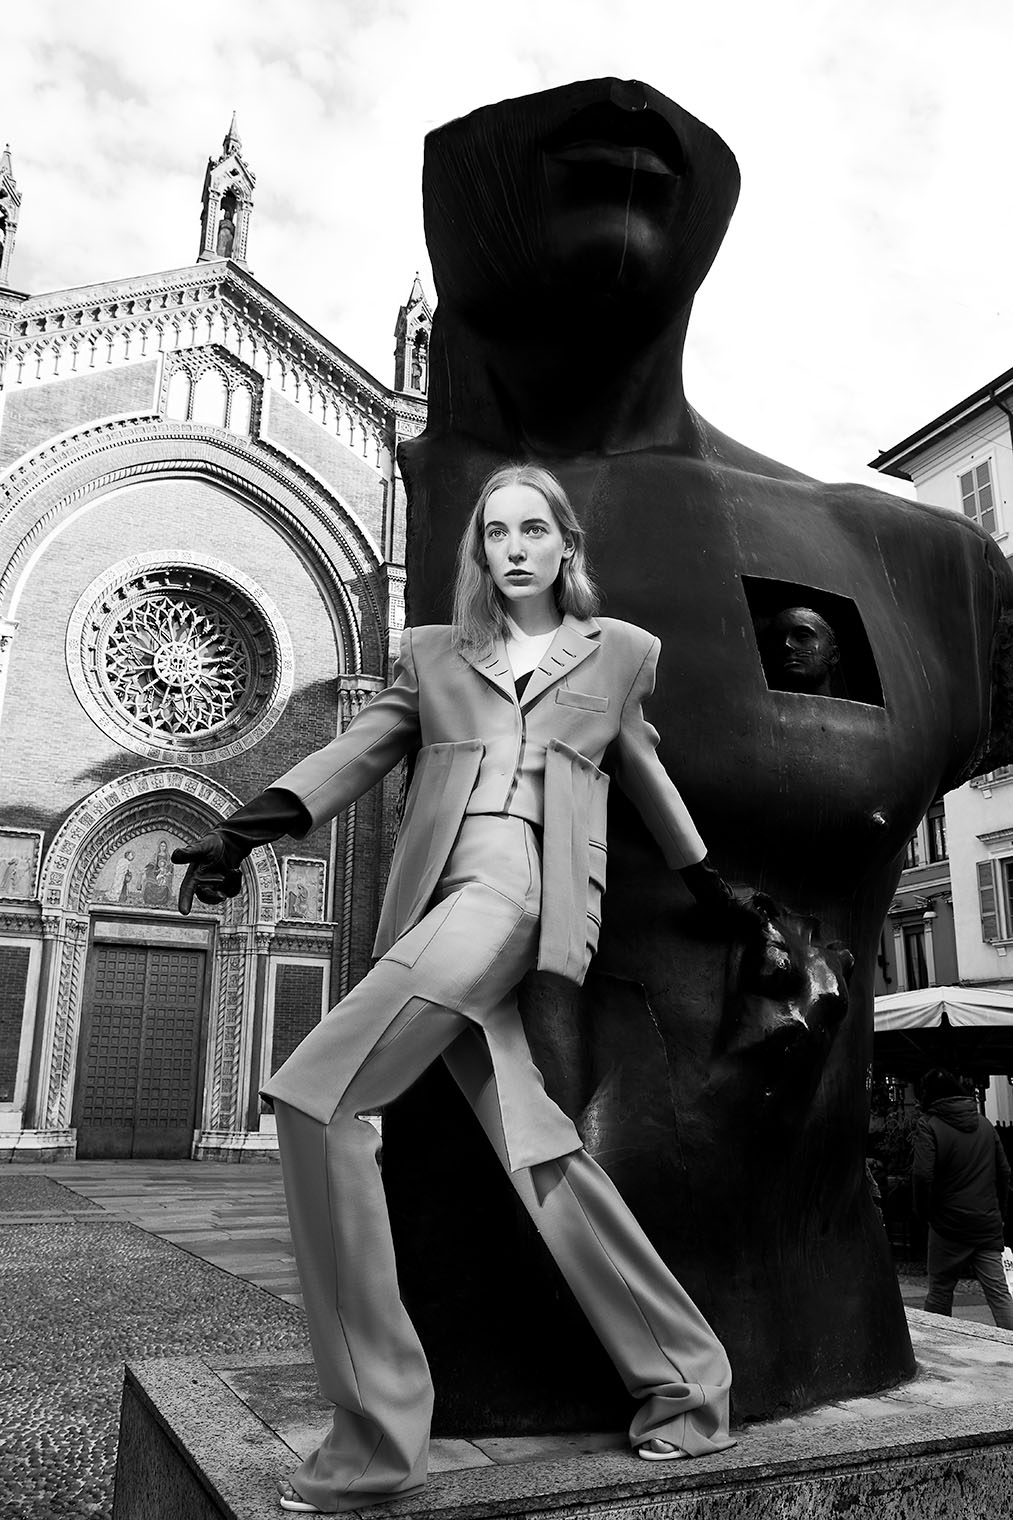 Woman in high fashion suit posing at expressionist statue